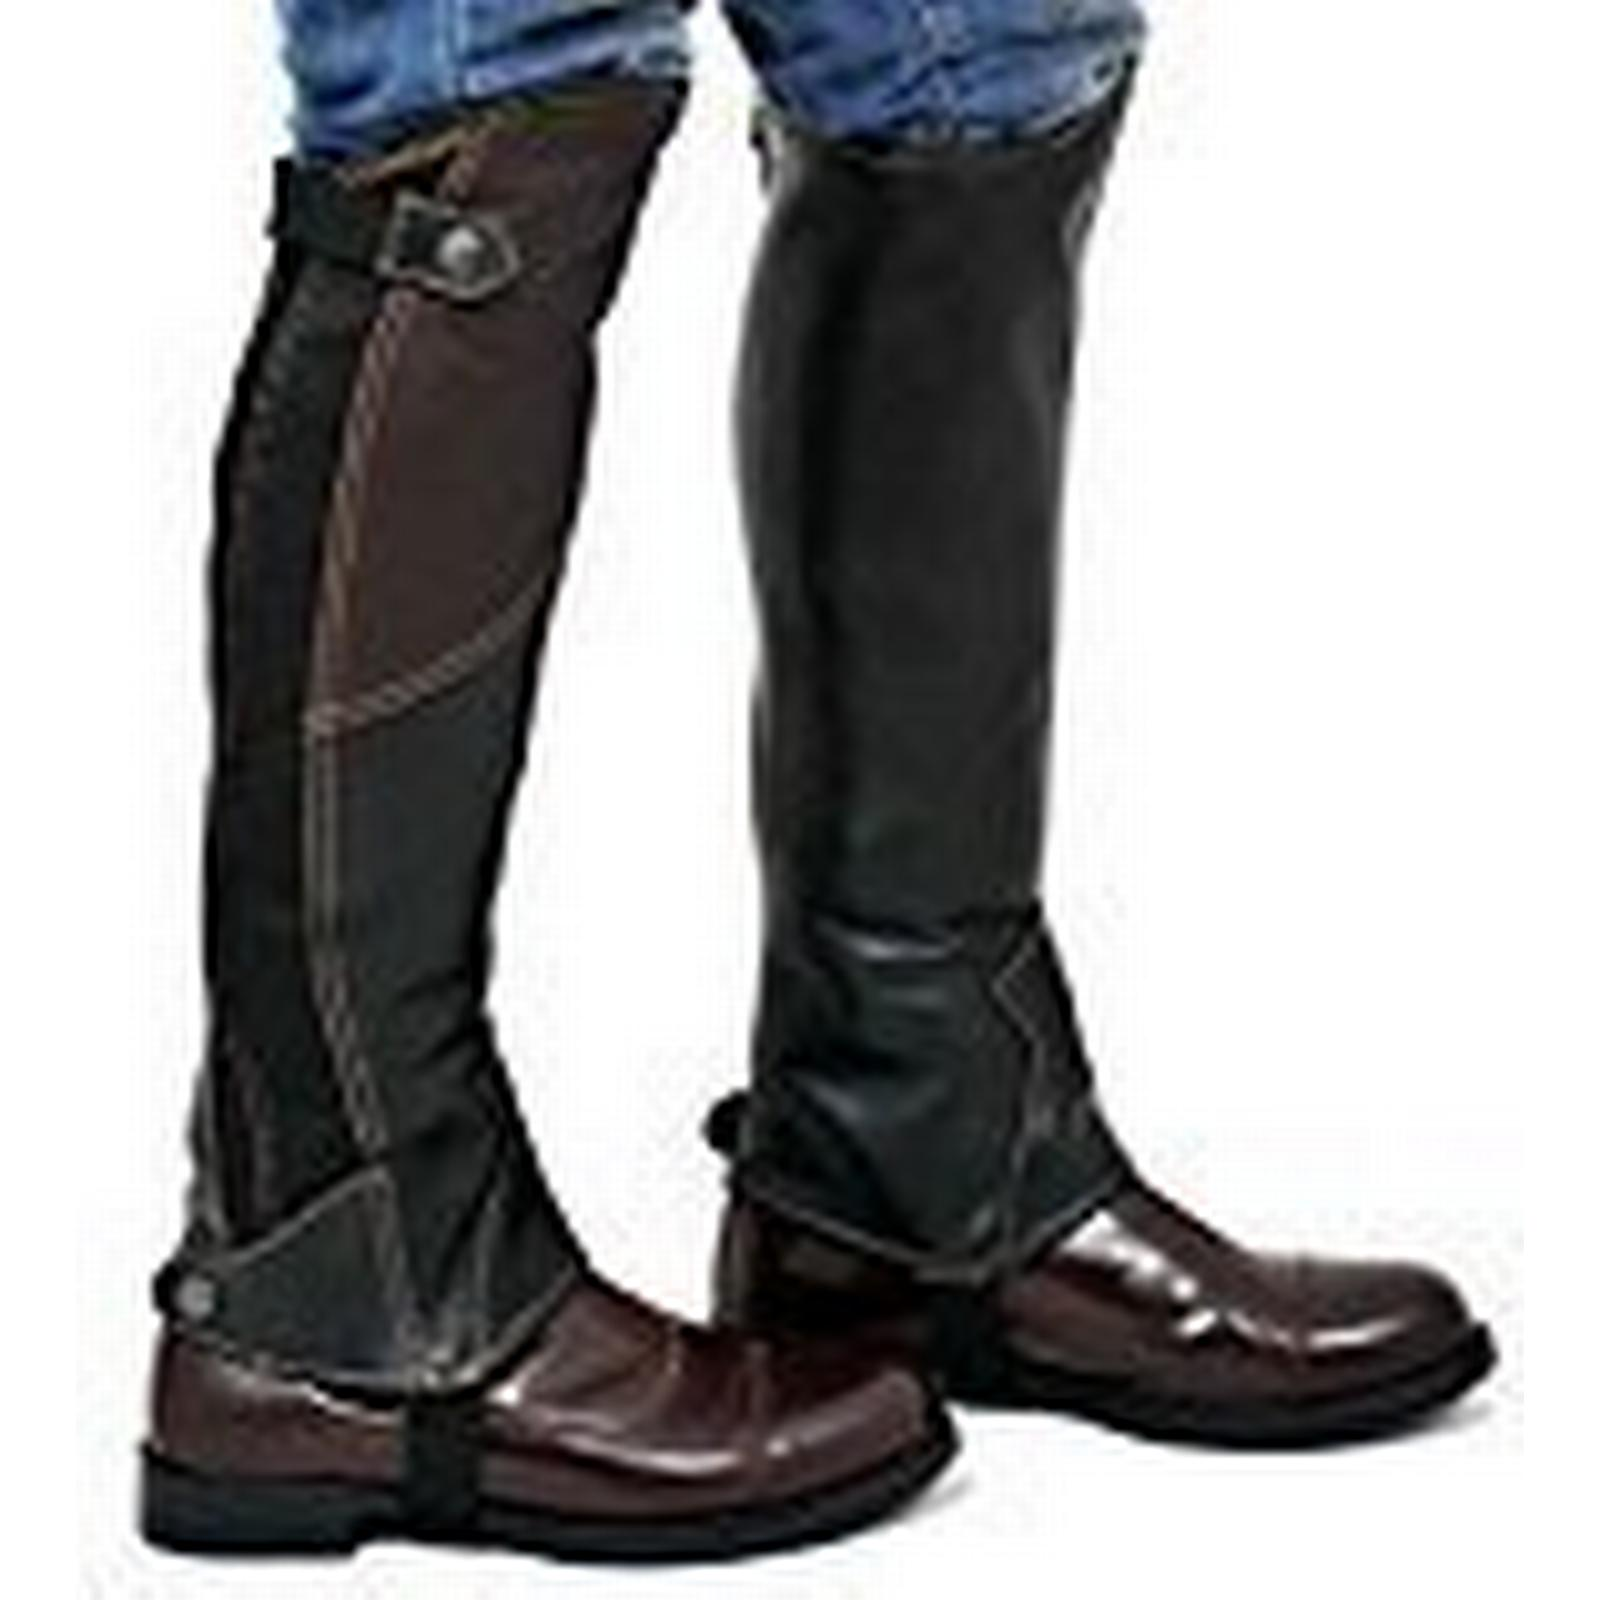 Riders Trend x 10024950 (XL, Calf (16-17) x Trend Height-16.50 Inch) - Women's 2 Tone Leather Gaiter - Black/Brown 819376